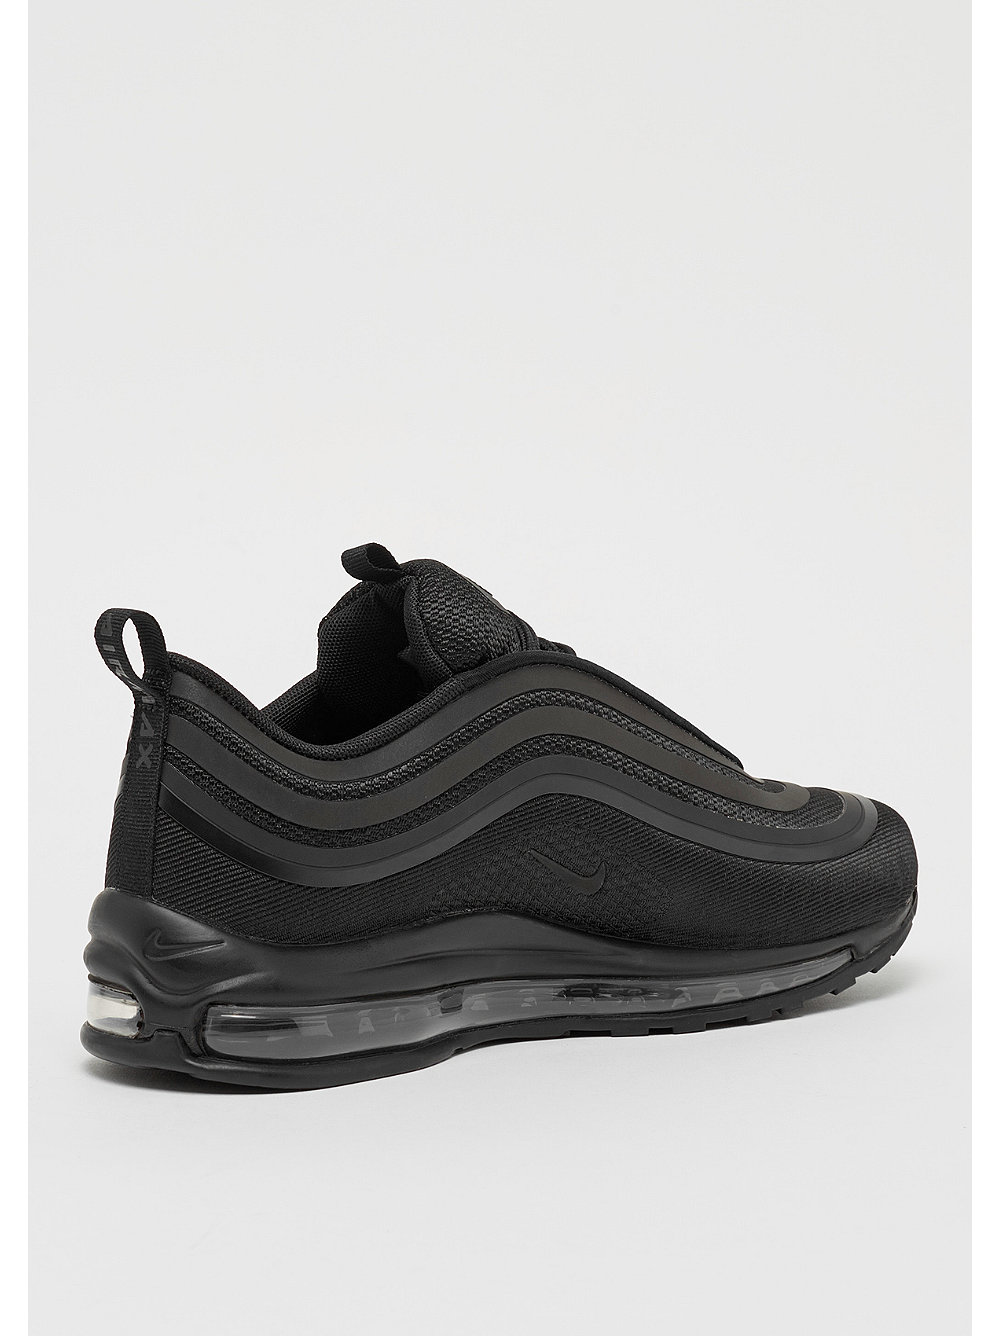 cheap for discount 1850b d72eb ... official store nike air max 97 ul 17 black black black 8b647 c3a27